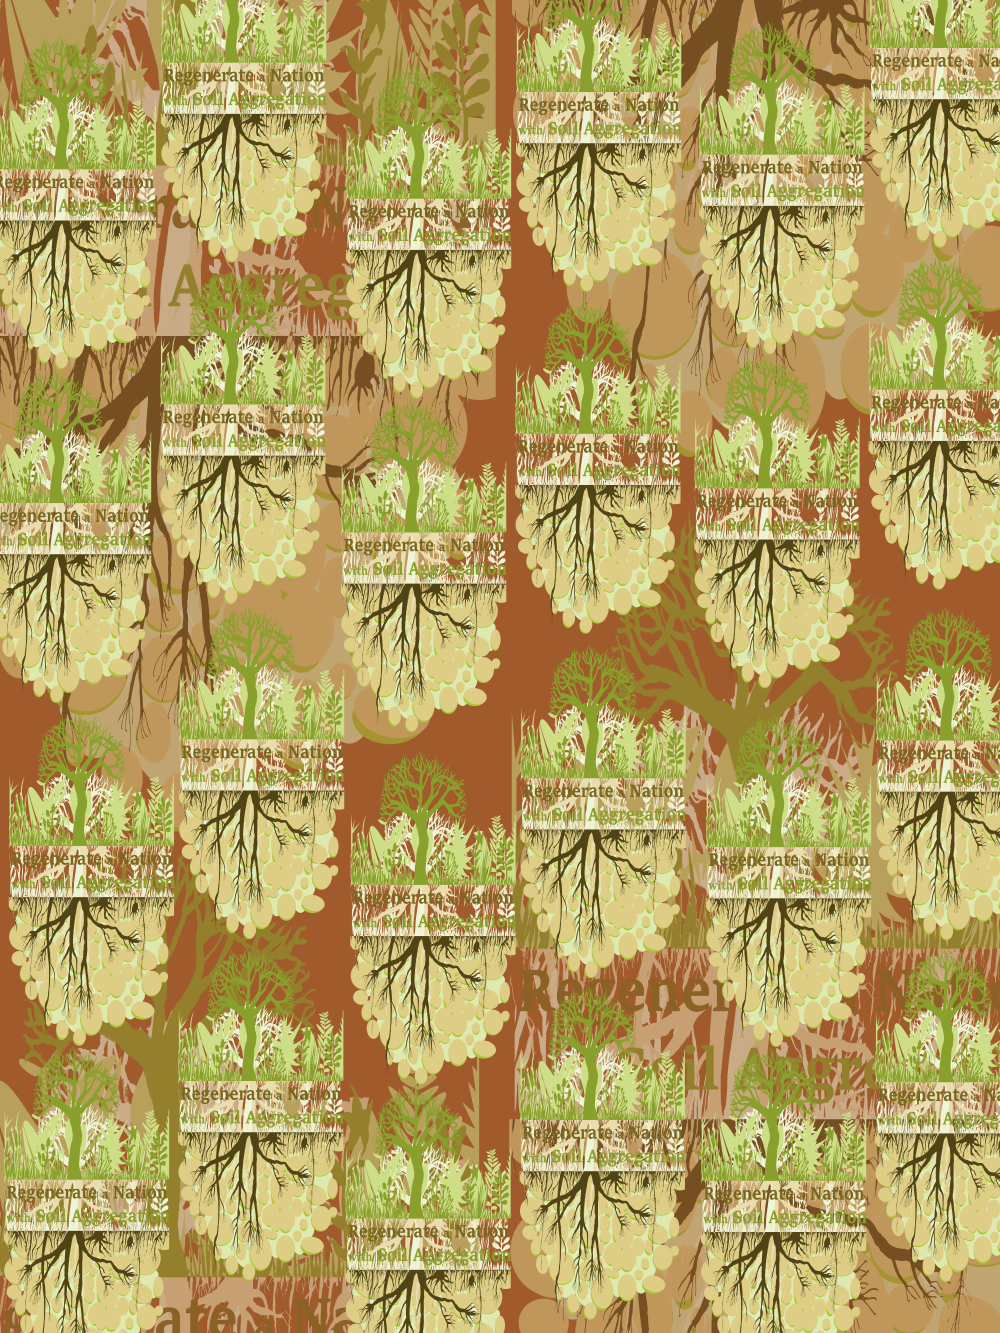 Our downloadable gift wrap paper to print at home. This is the Regenerate a Nation design on a red ochre background.